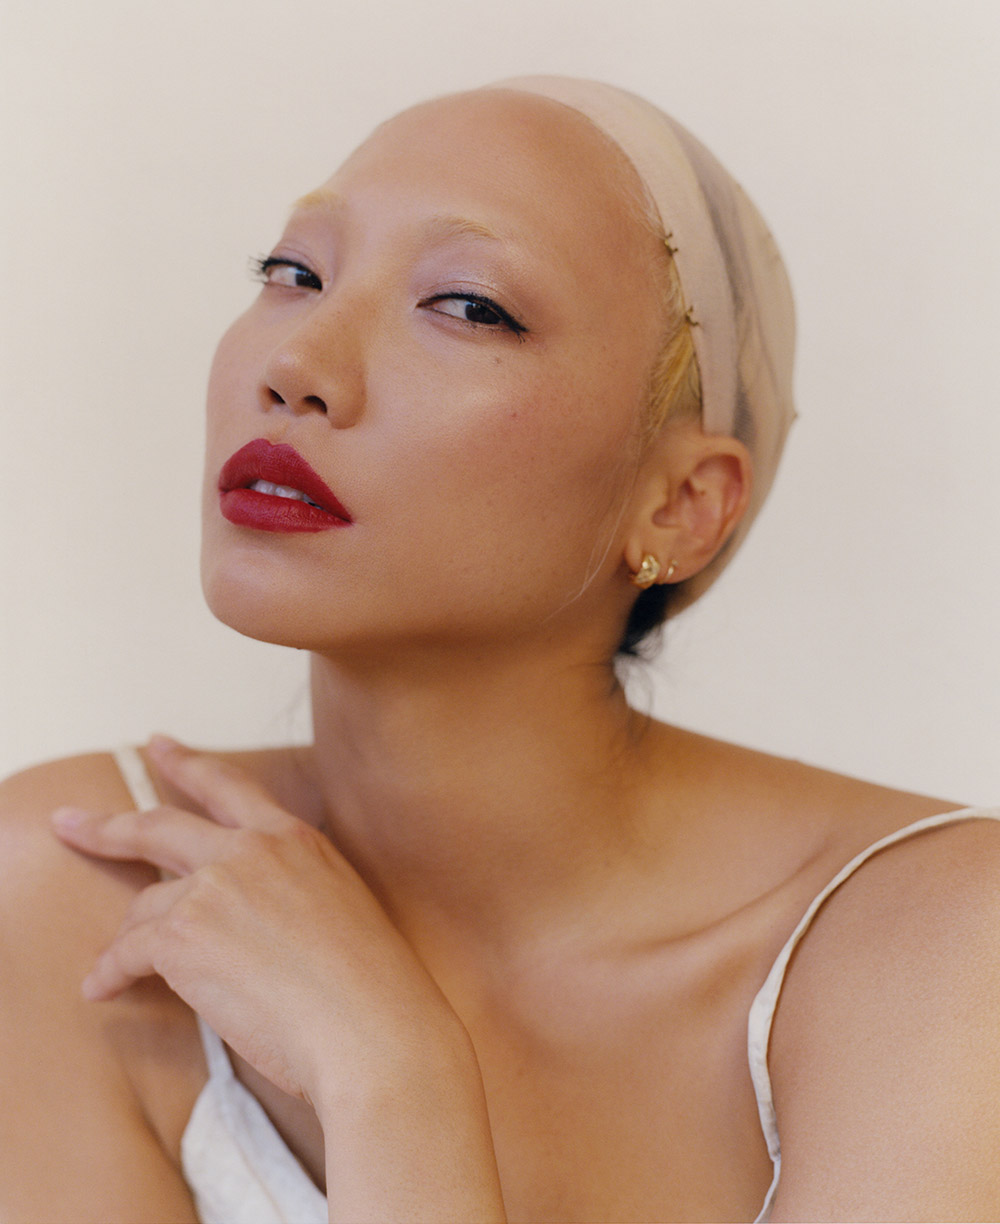 Soo Joo Park covers The WOW Magazine Issue 3 2020 Digital Edition by Peter Ash Lee